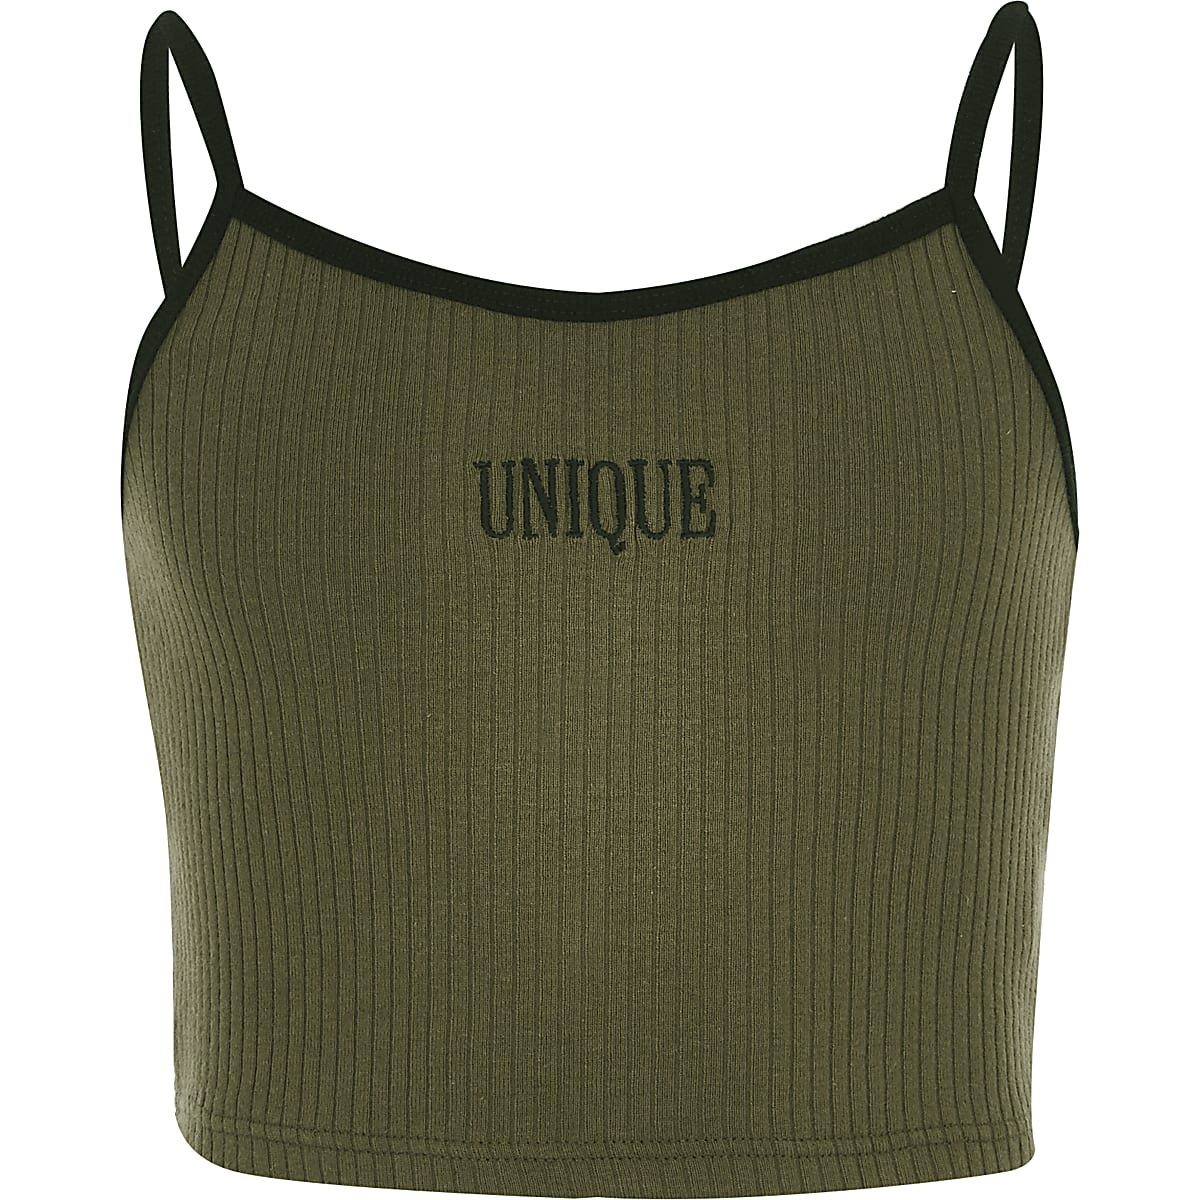 Girls khaki 'Unique' crop top